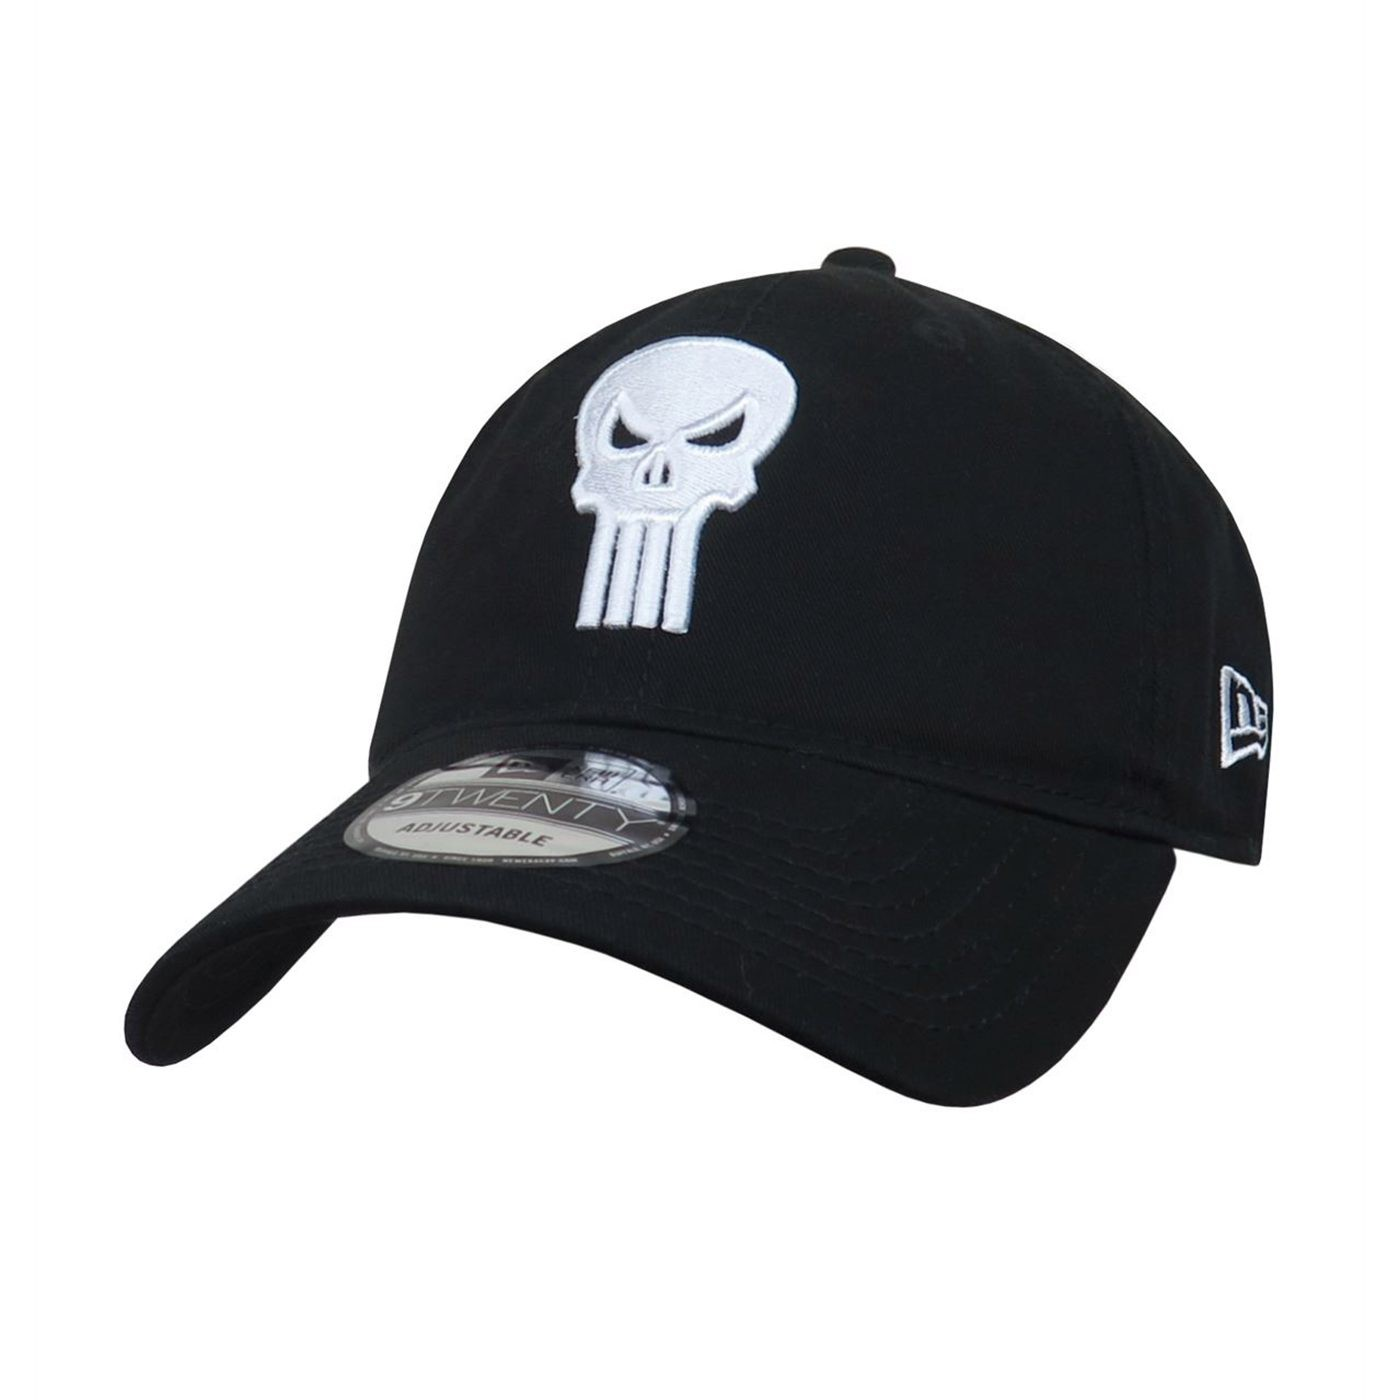 Cappellino The punisher